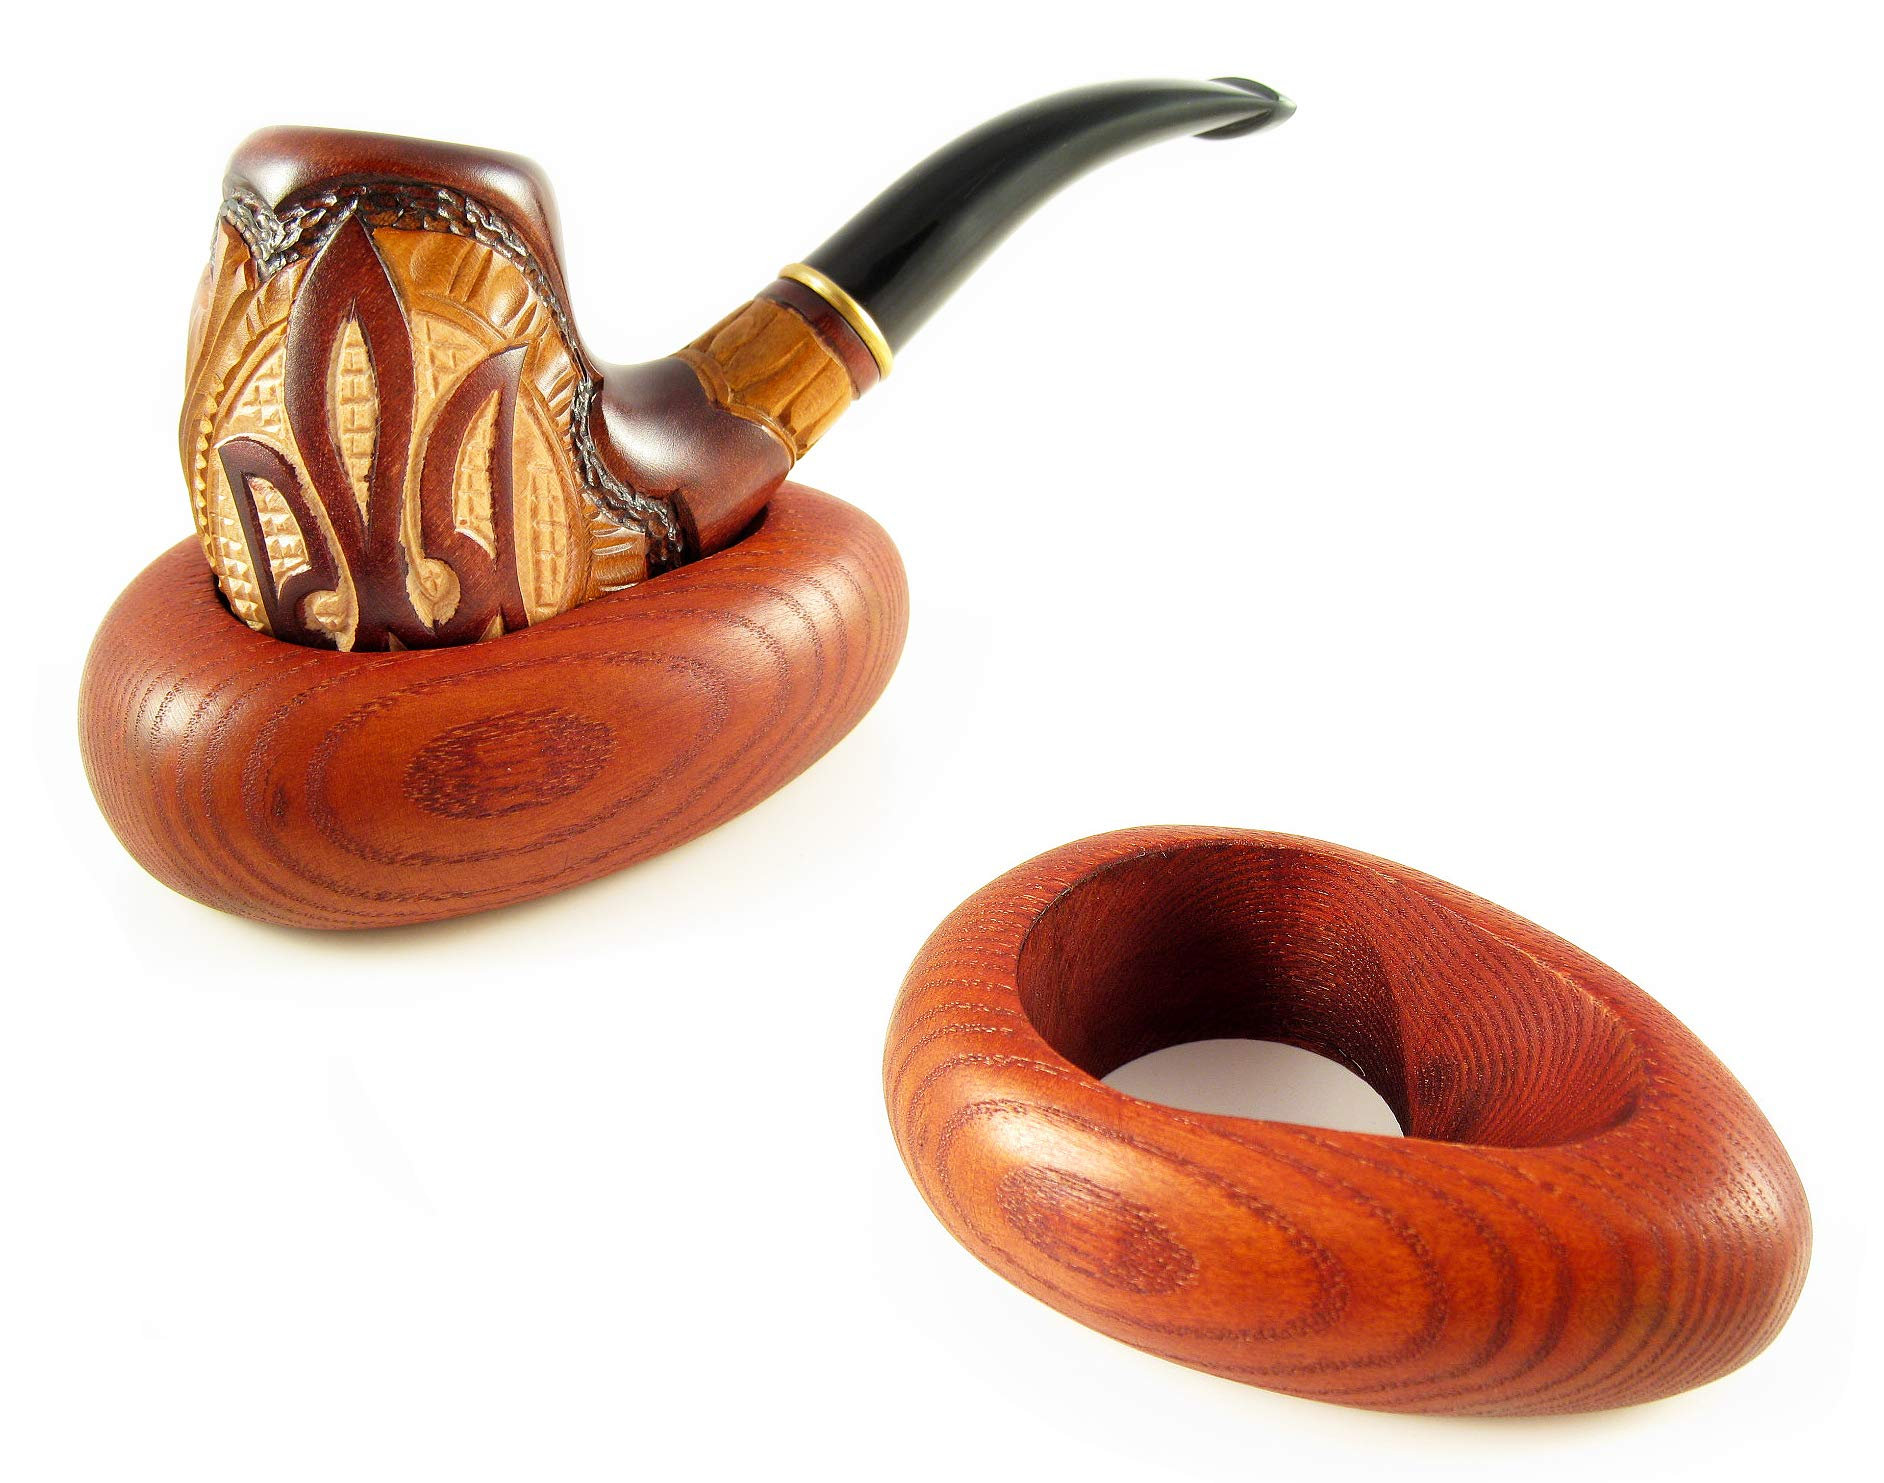 New Wooden Pipe Stand Rack Holder for Tobacco Smoking Pipe. Handcrafted by Fashion Pipes